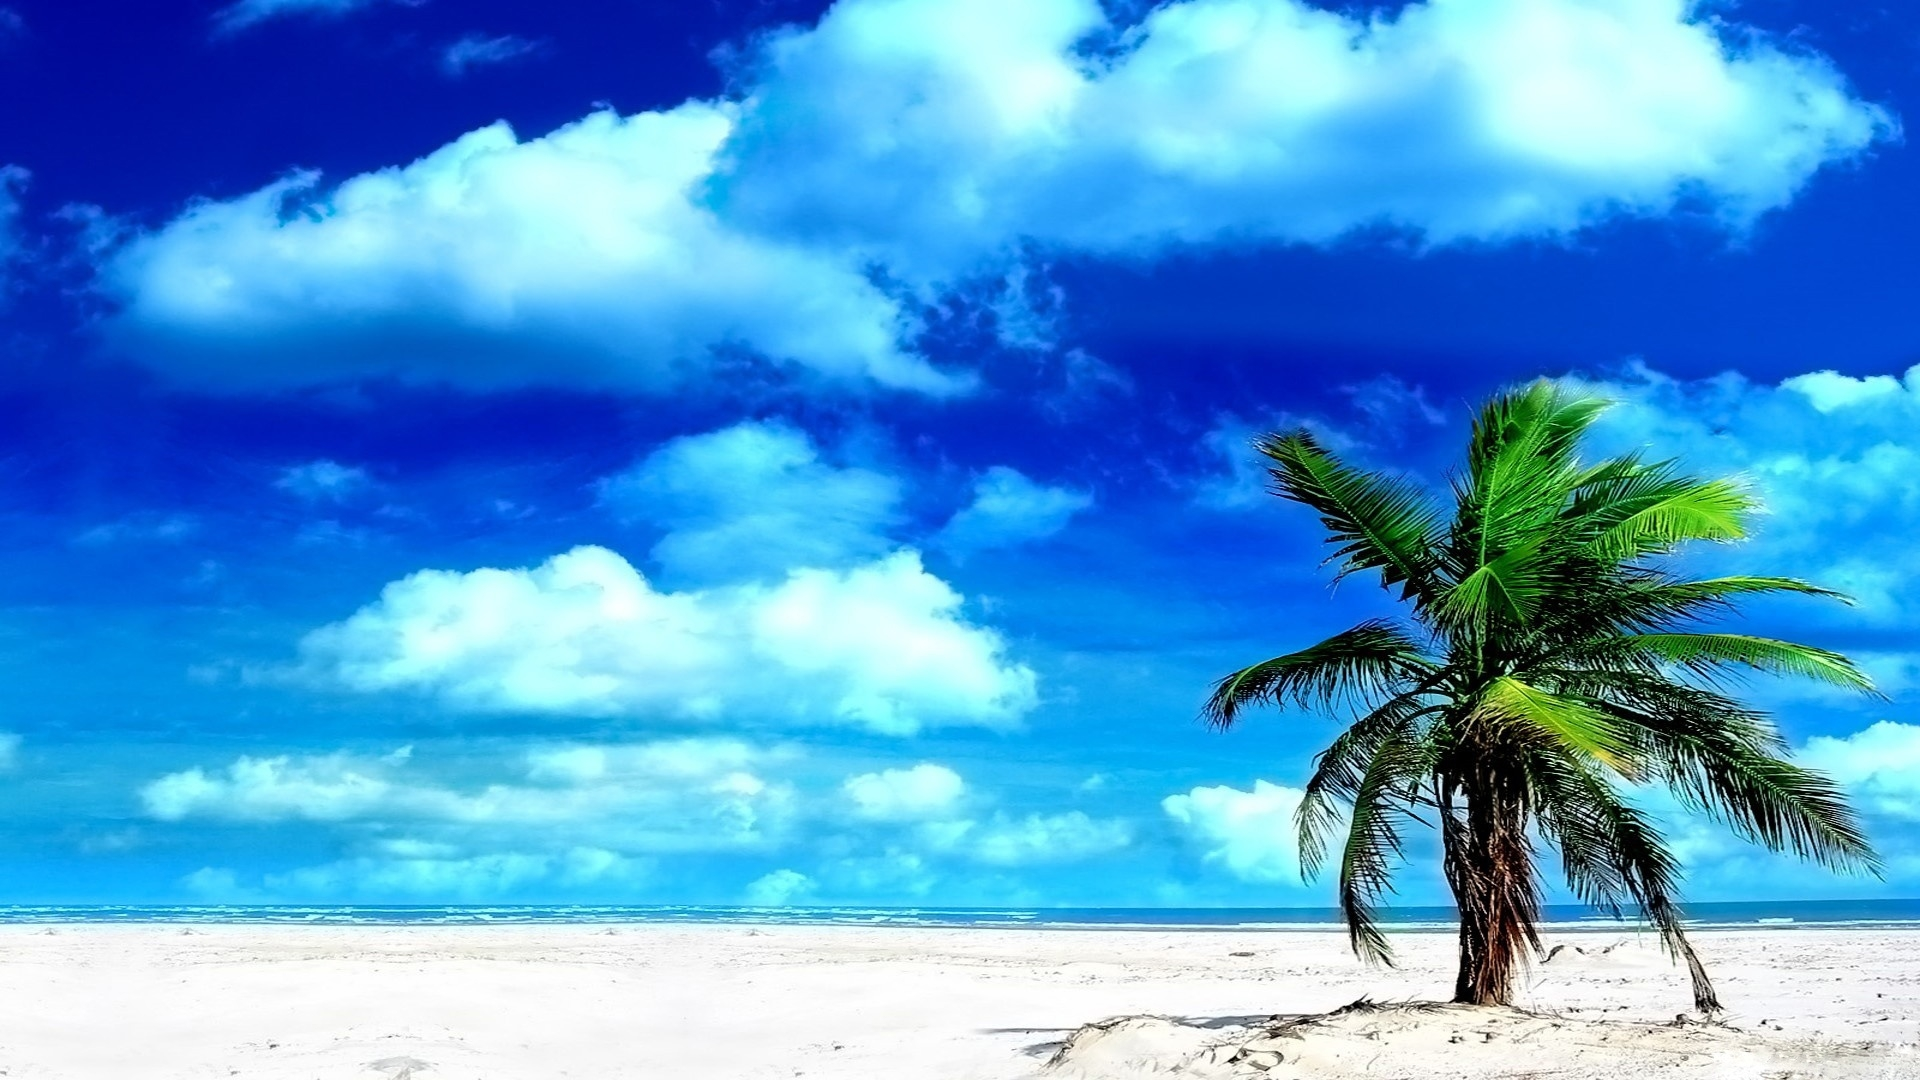 Hd Tropical Island Beach Paradise Wallpapers And Backgrounds: 1920x1080 Paradise Island Desktop PC And Mac Wallpaper